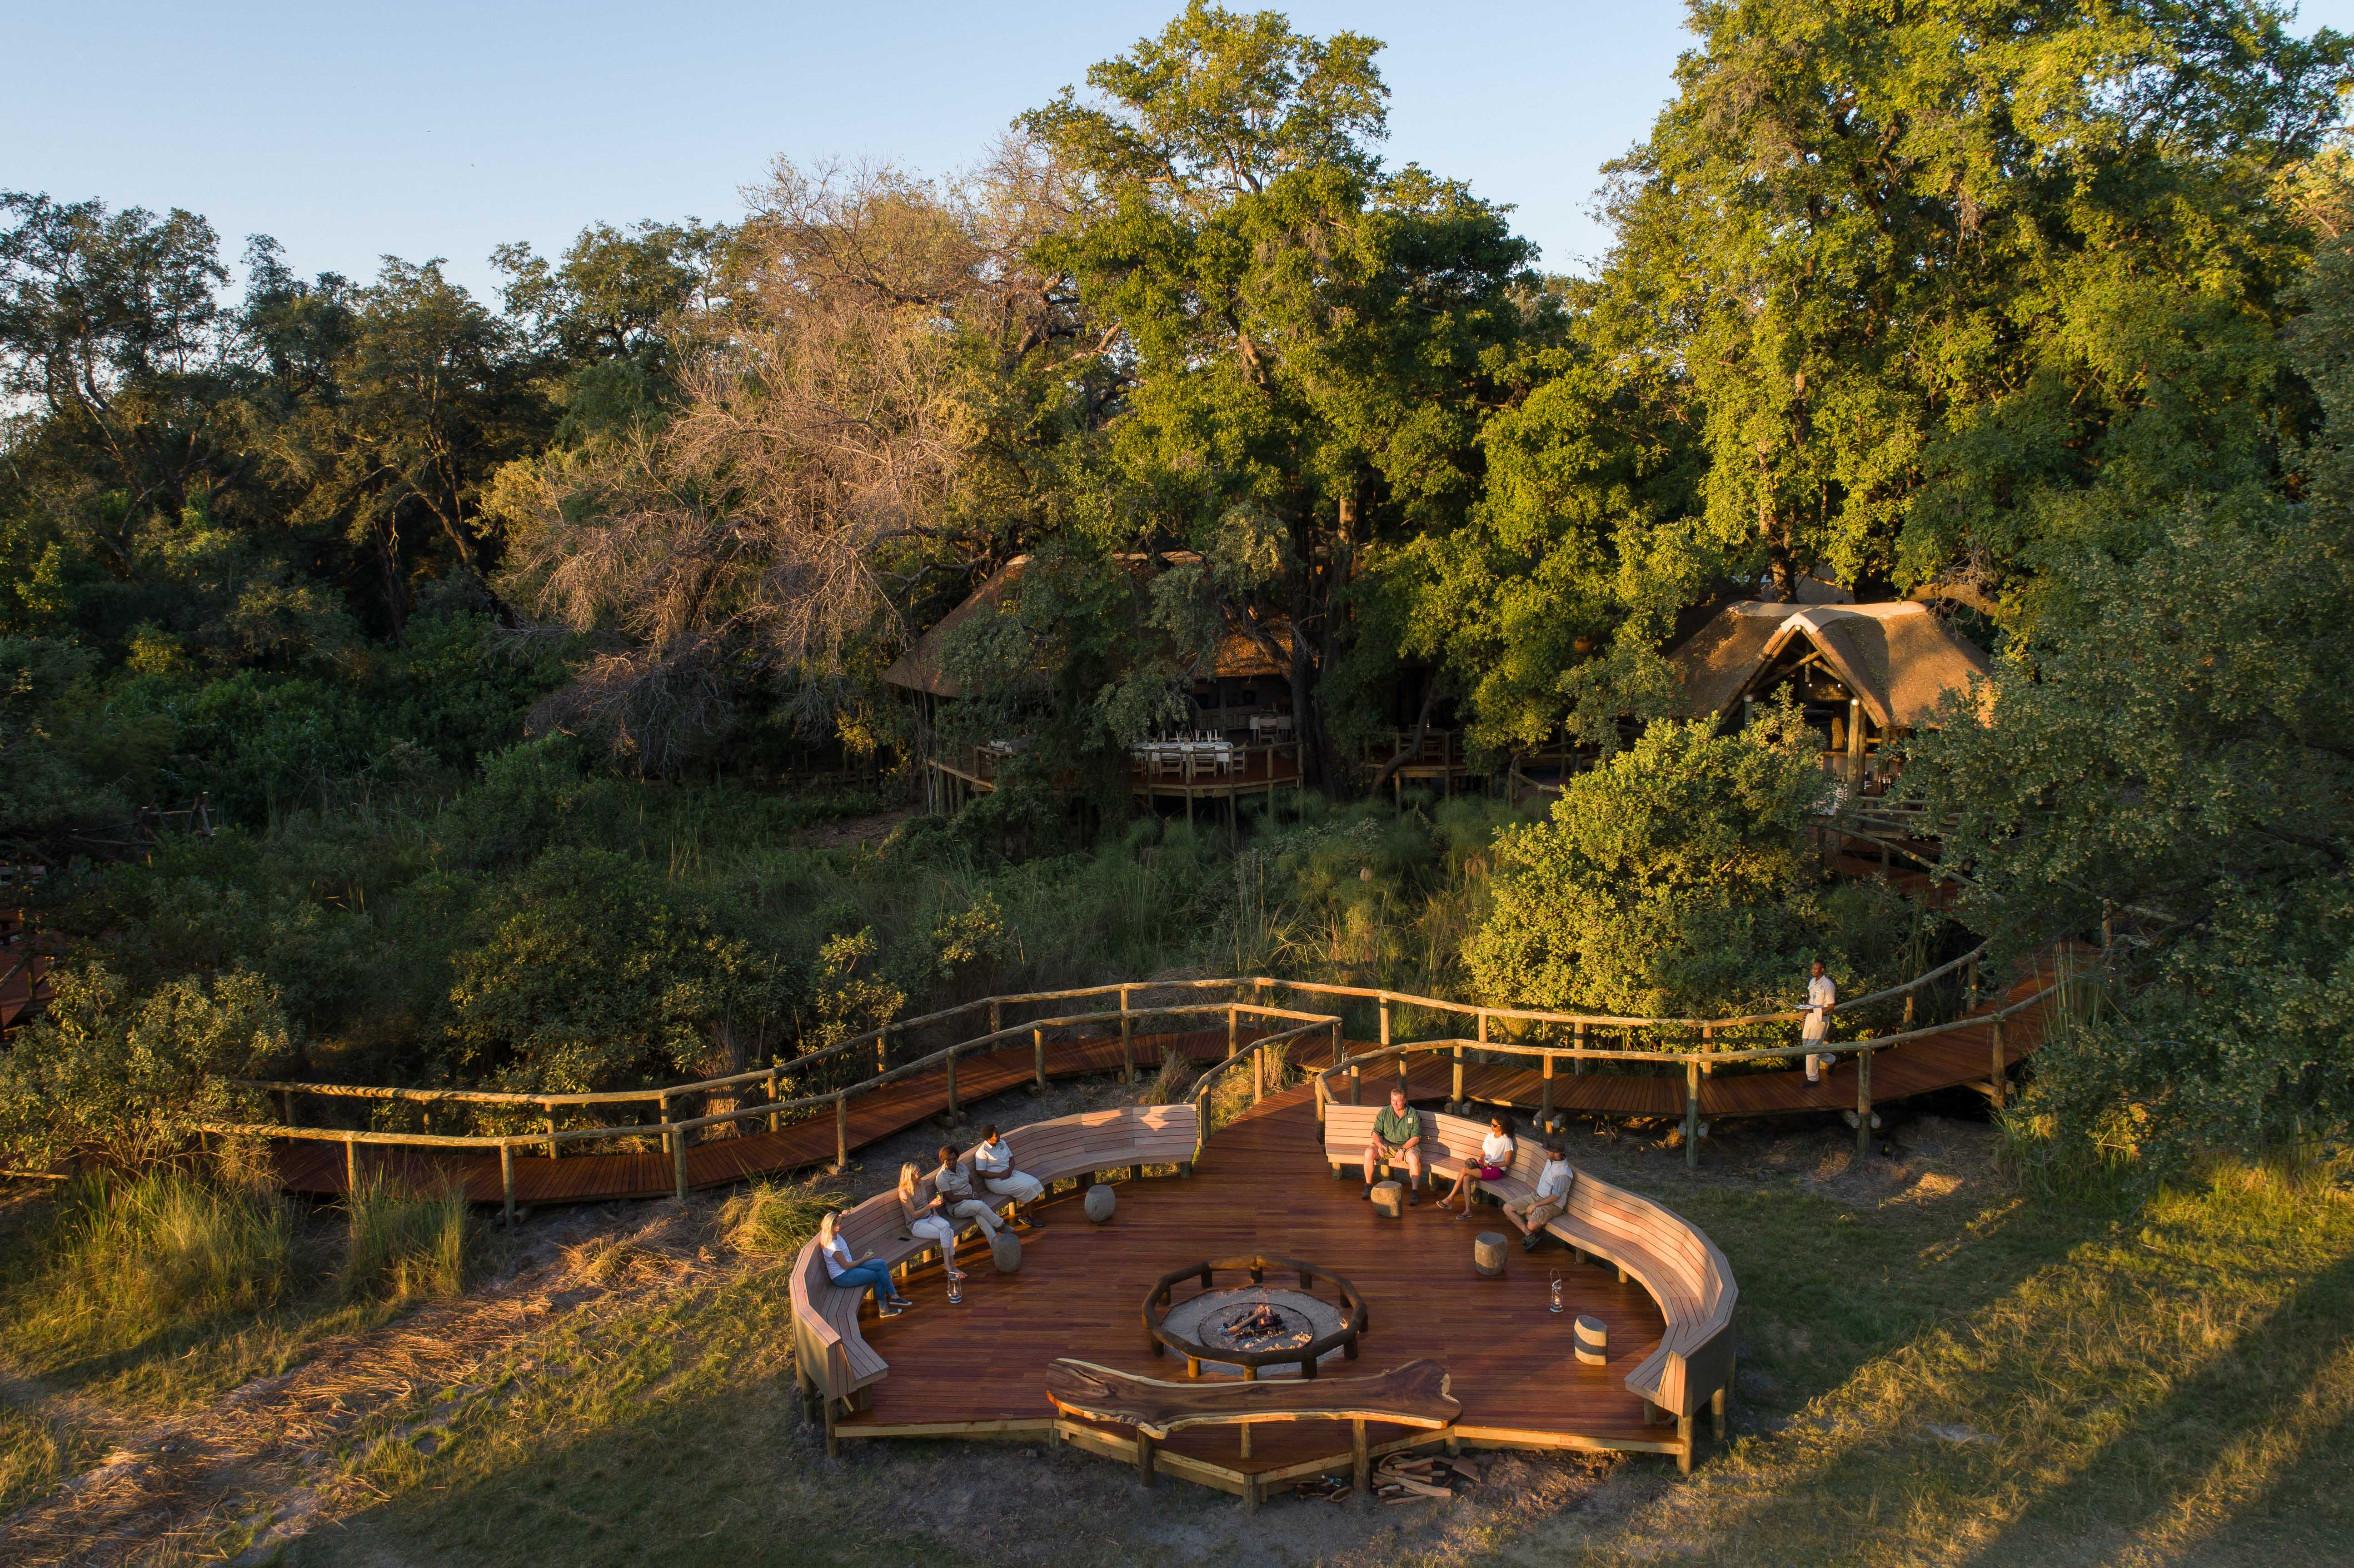 Moremi Game Reserve Archives Safari Destinations Northedge Rover 1 Gps Wacth Camp Fire Place